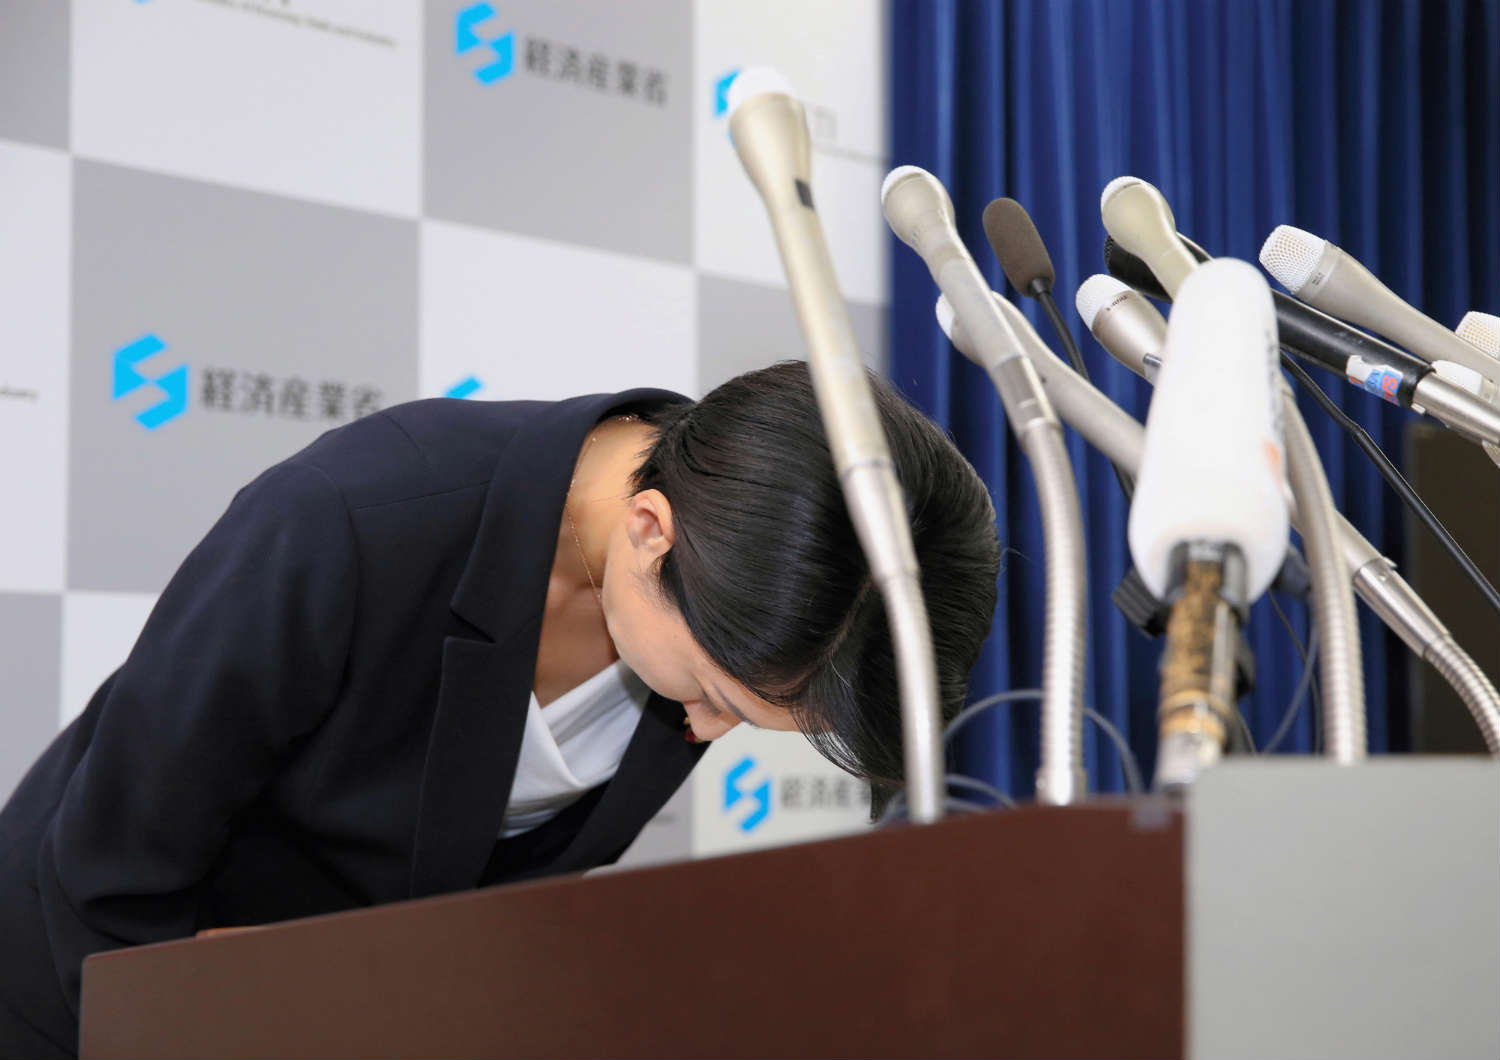 Japanese Trade and Industry Minister Yuko Obuchi resigned on Oct. 20 amid allegations of misusing election funds